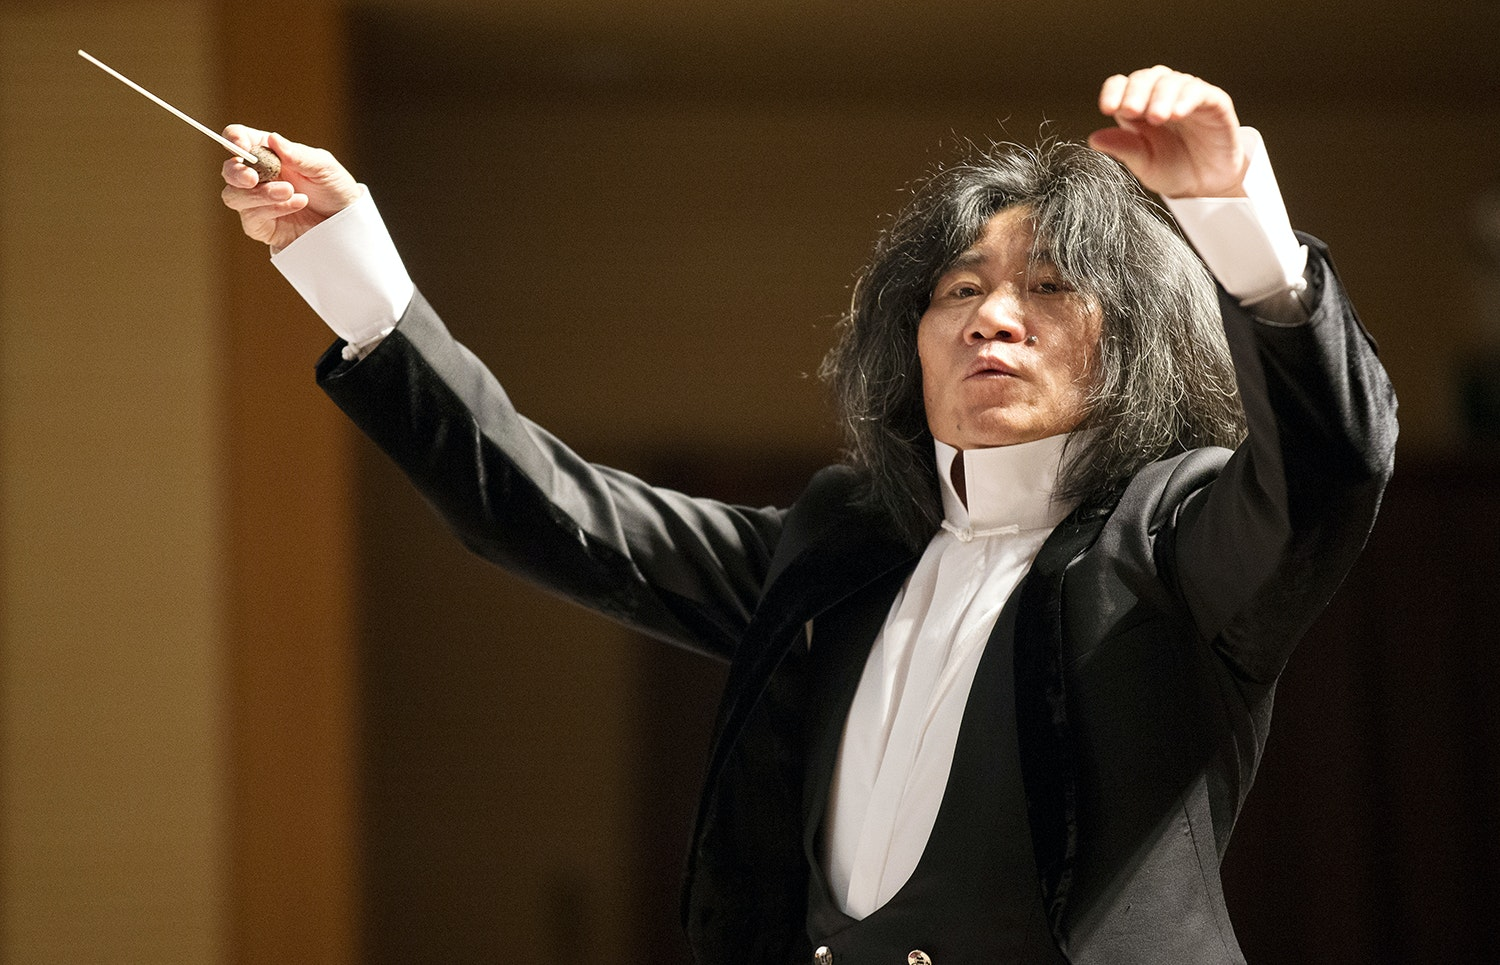 Pang Kapang conducts the Suzhou Chinese Orchestra in a colorful program of traditional Chinese music